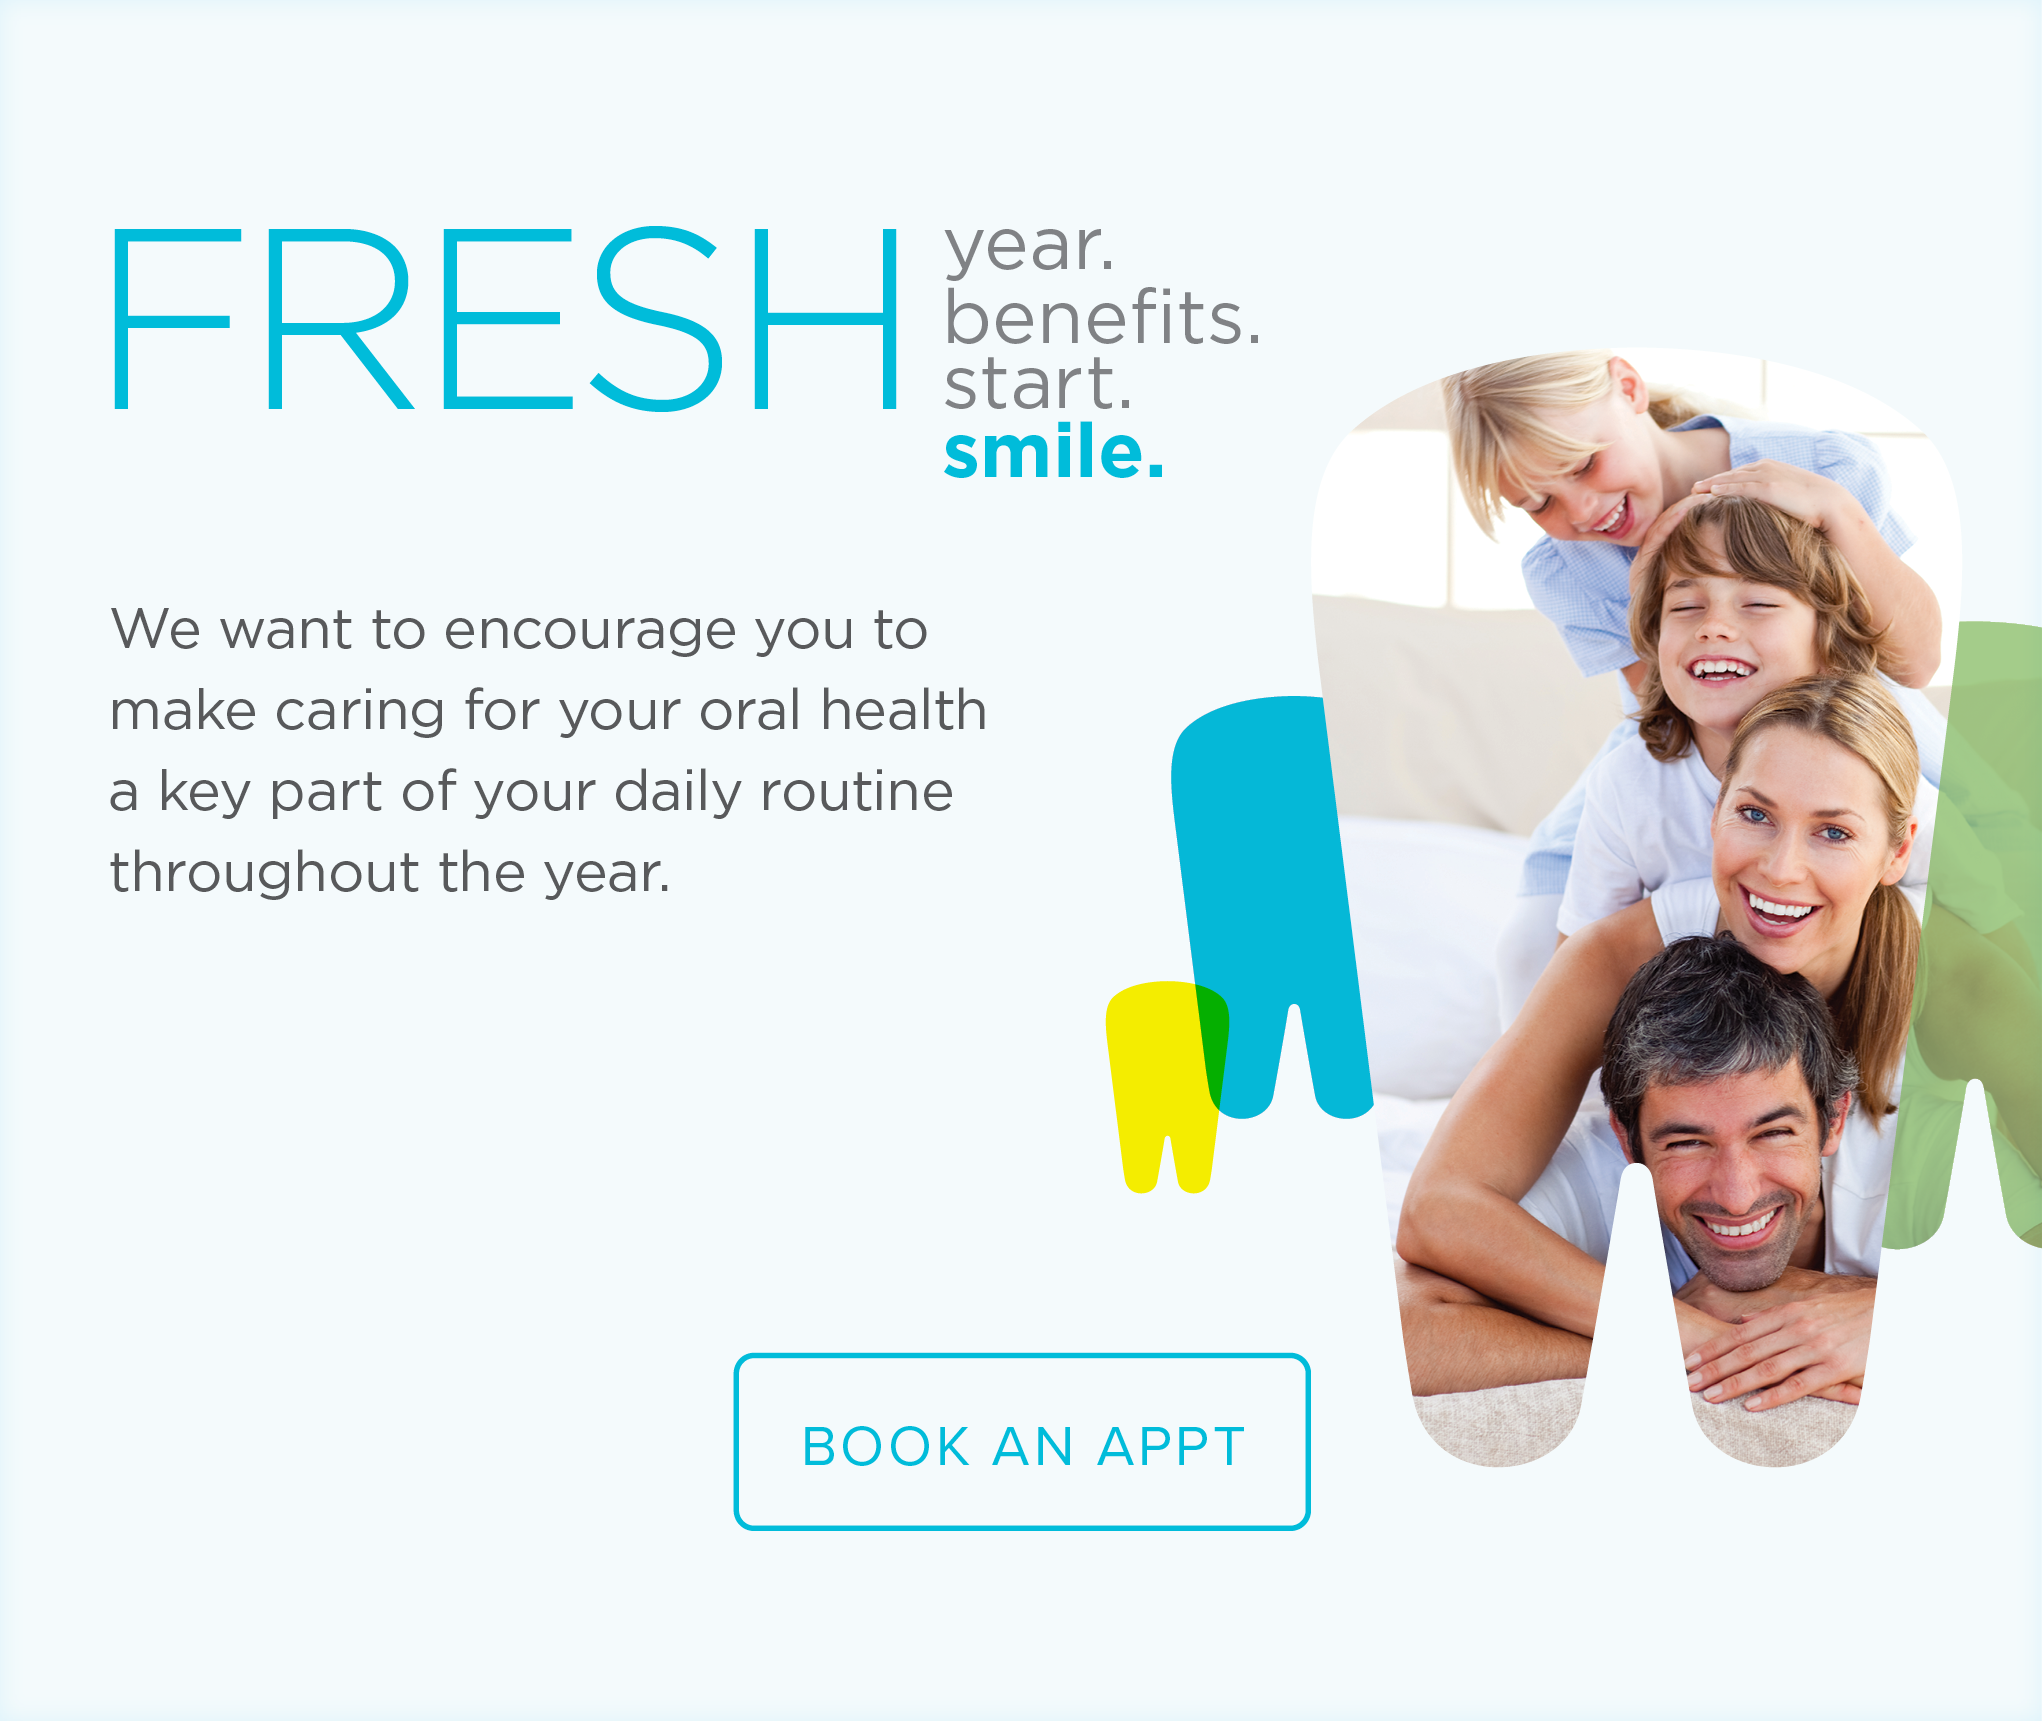 City Place Modern Dentistry - Make the Most of Your Benefits